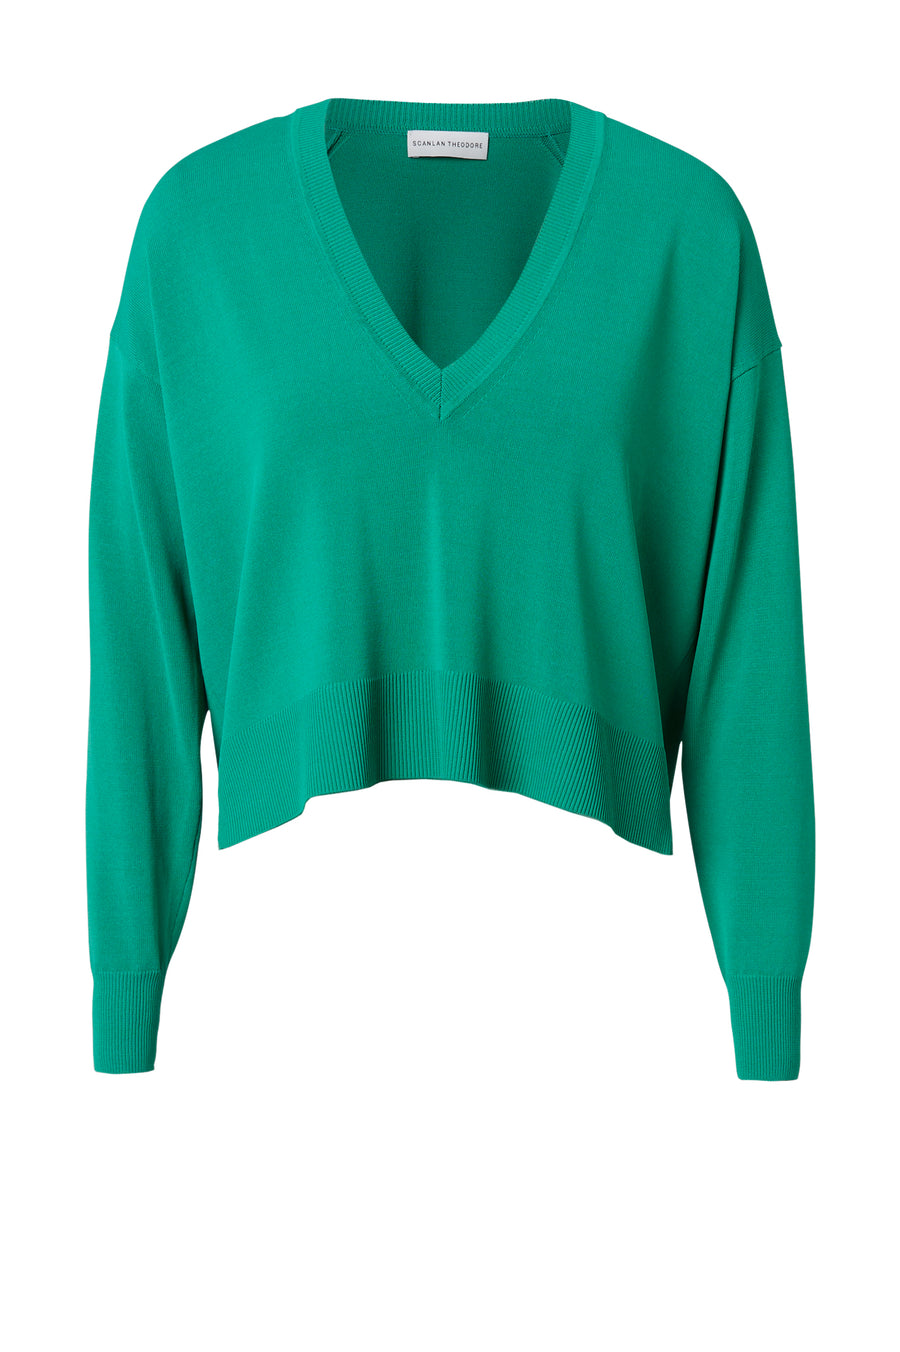 The Pleated Rib V-Neck Sweater is a V Neck Cropped Sweater, color verde